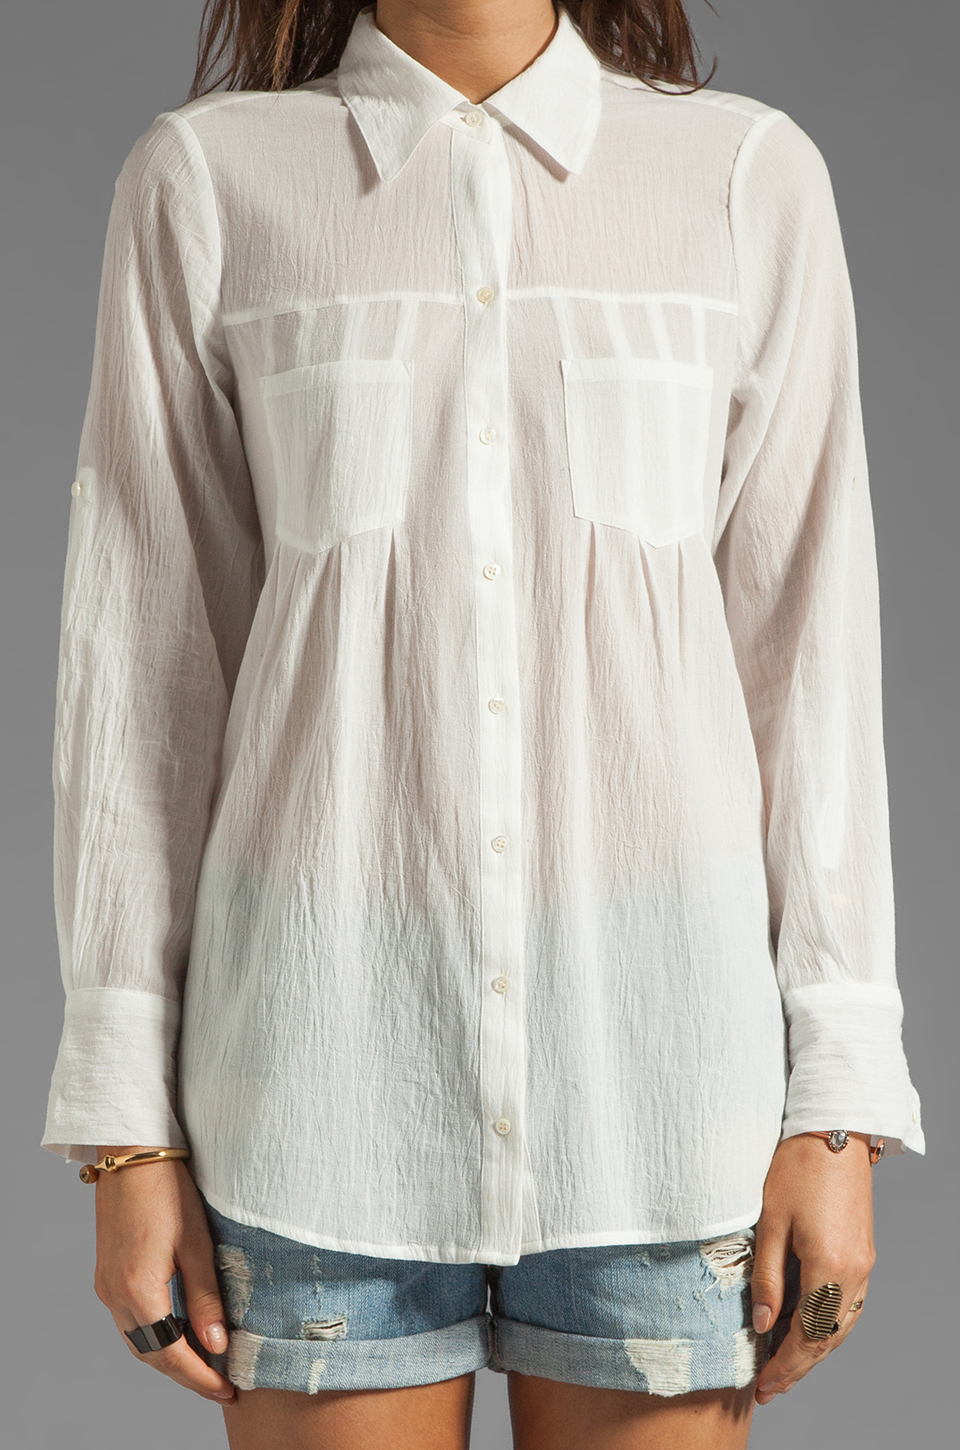 Joie Pinot Button Up in Porcelain